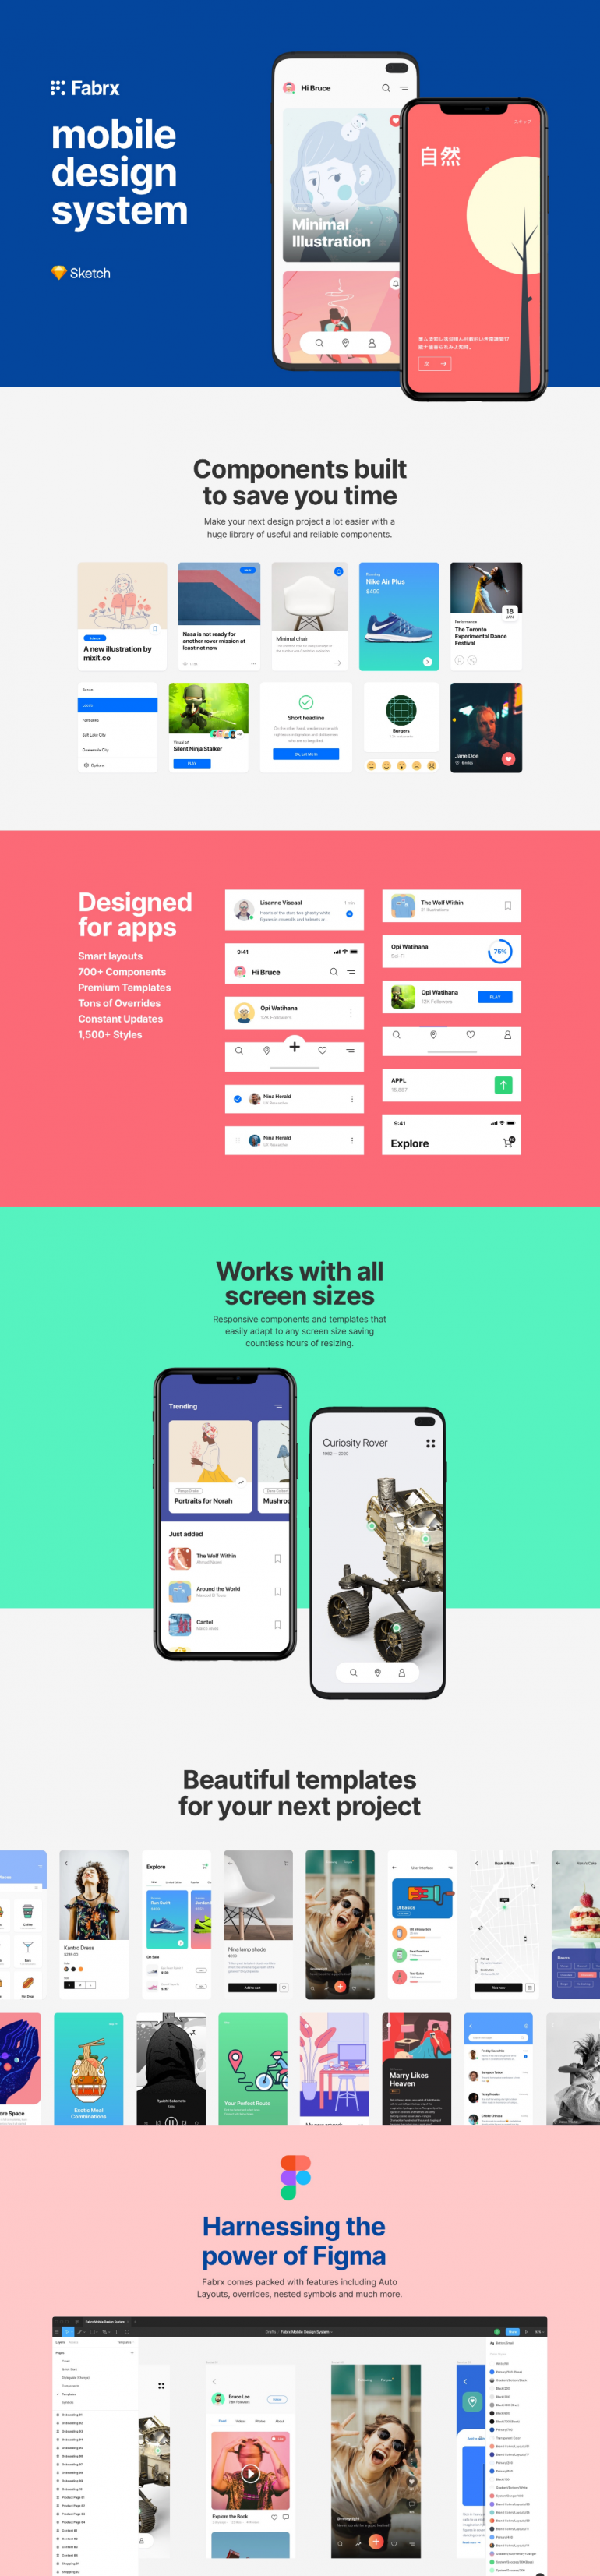 Fabrx Mobile Design System (For Figma)